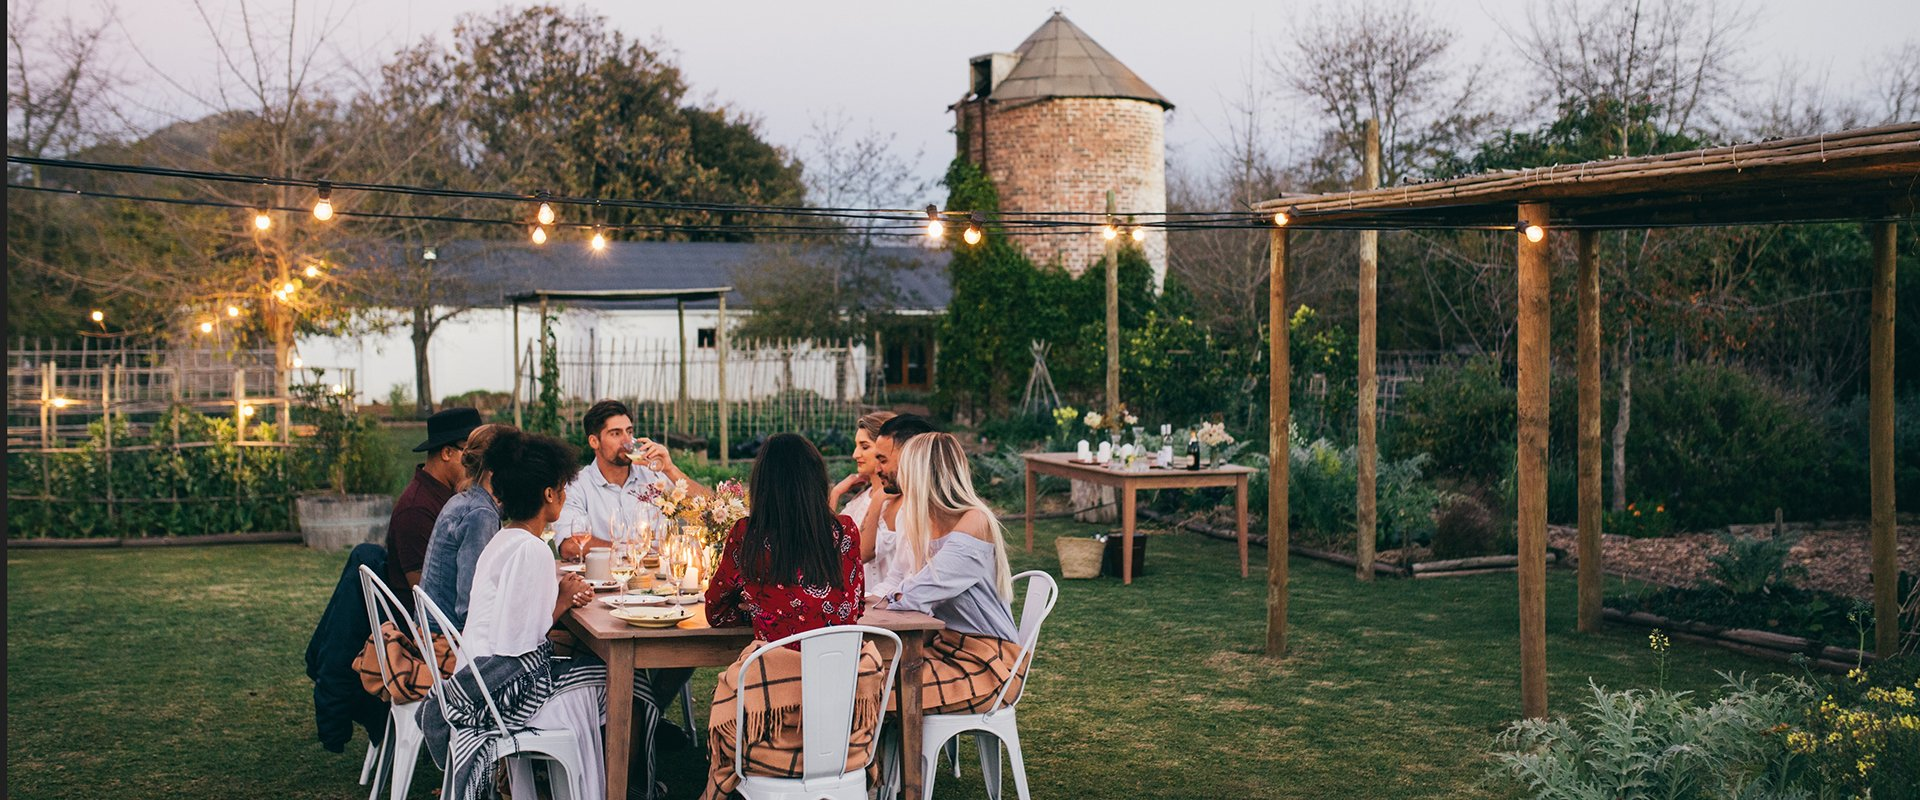 Outdoor dinner party similar to a private Teddish Dinner double date